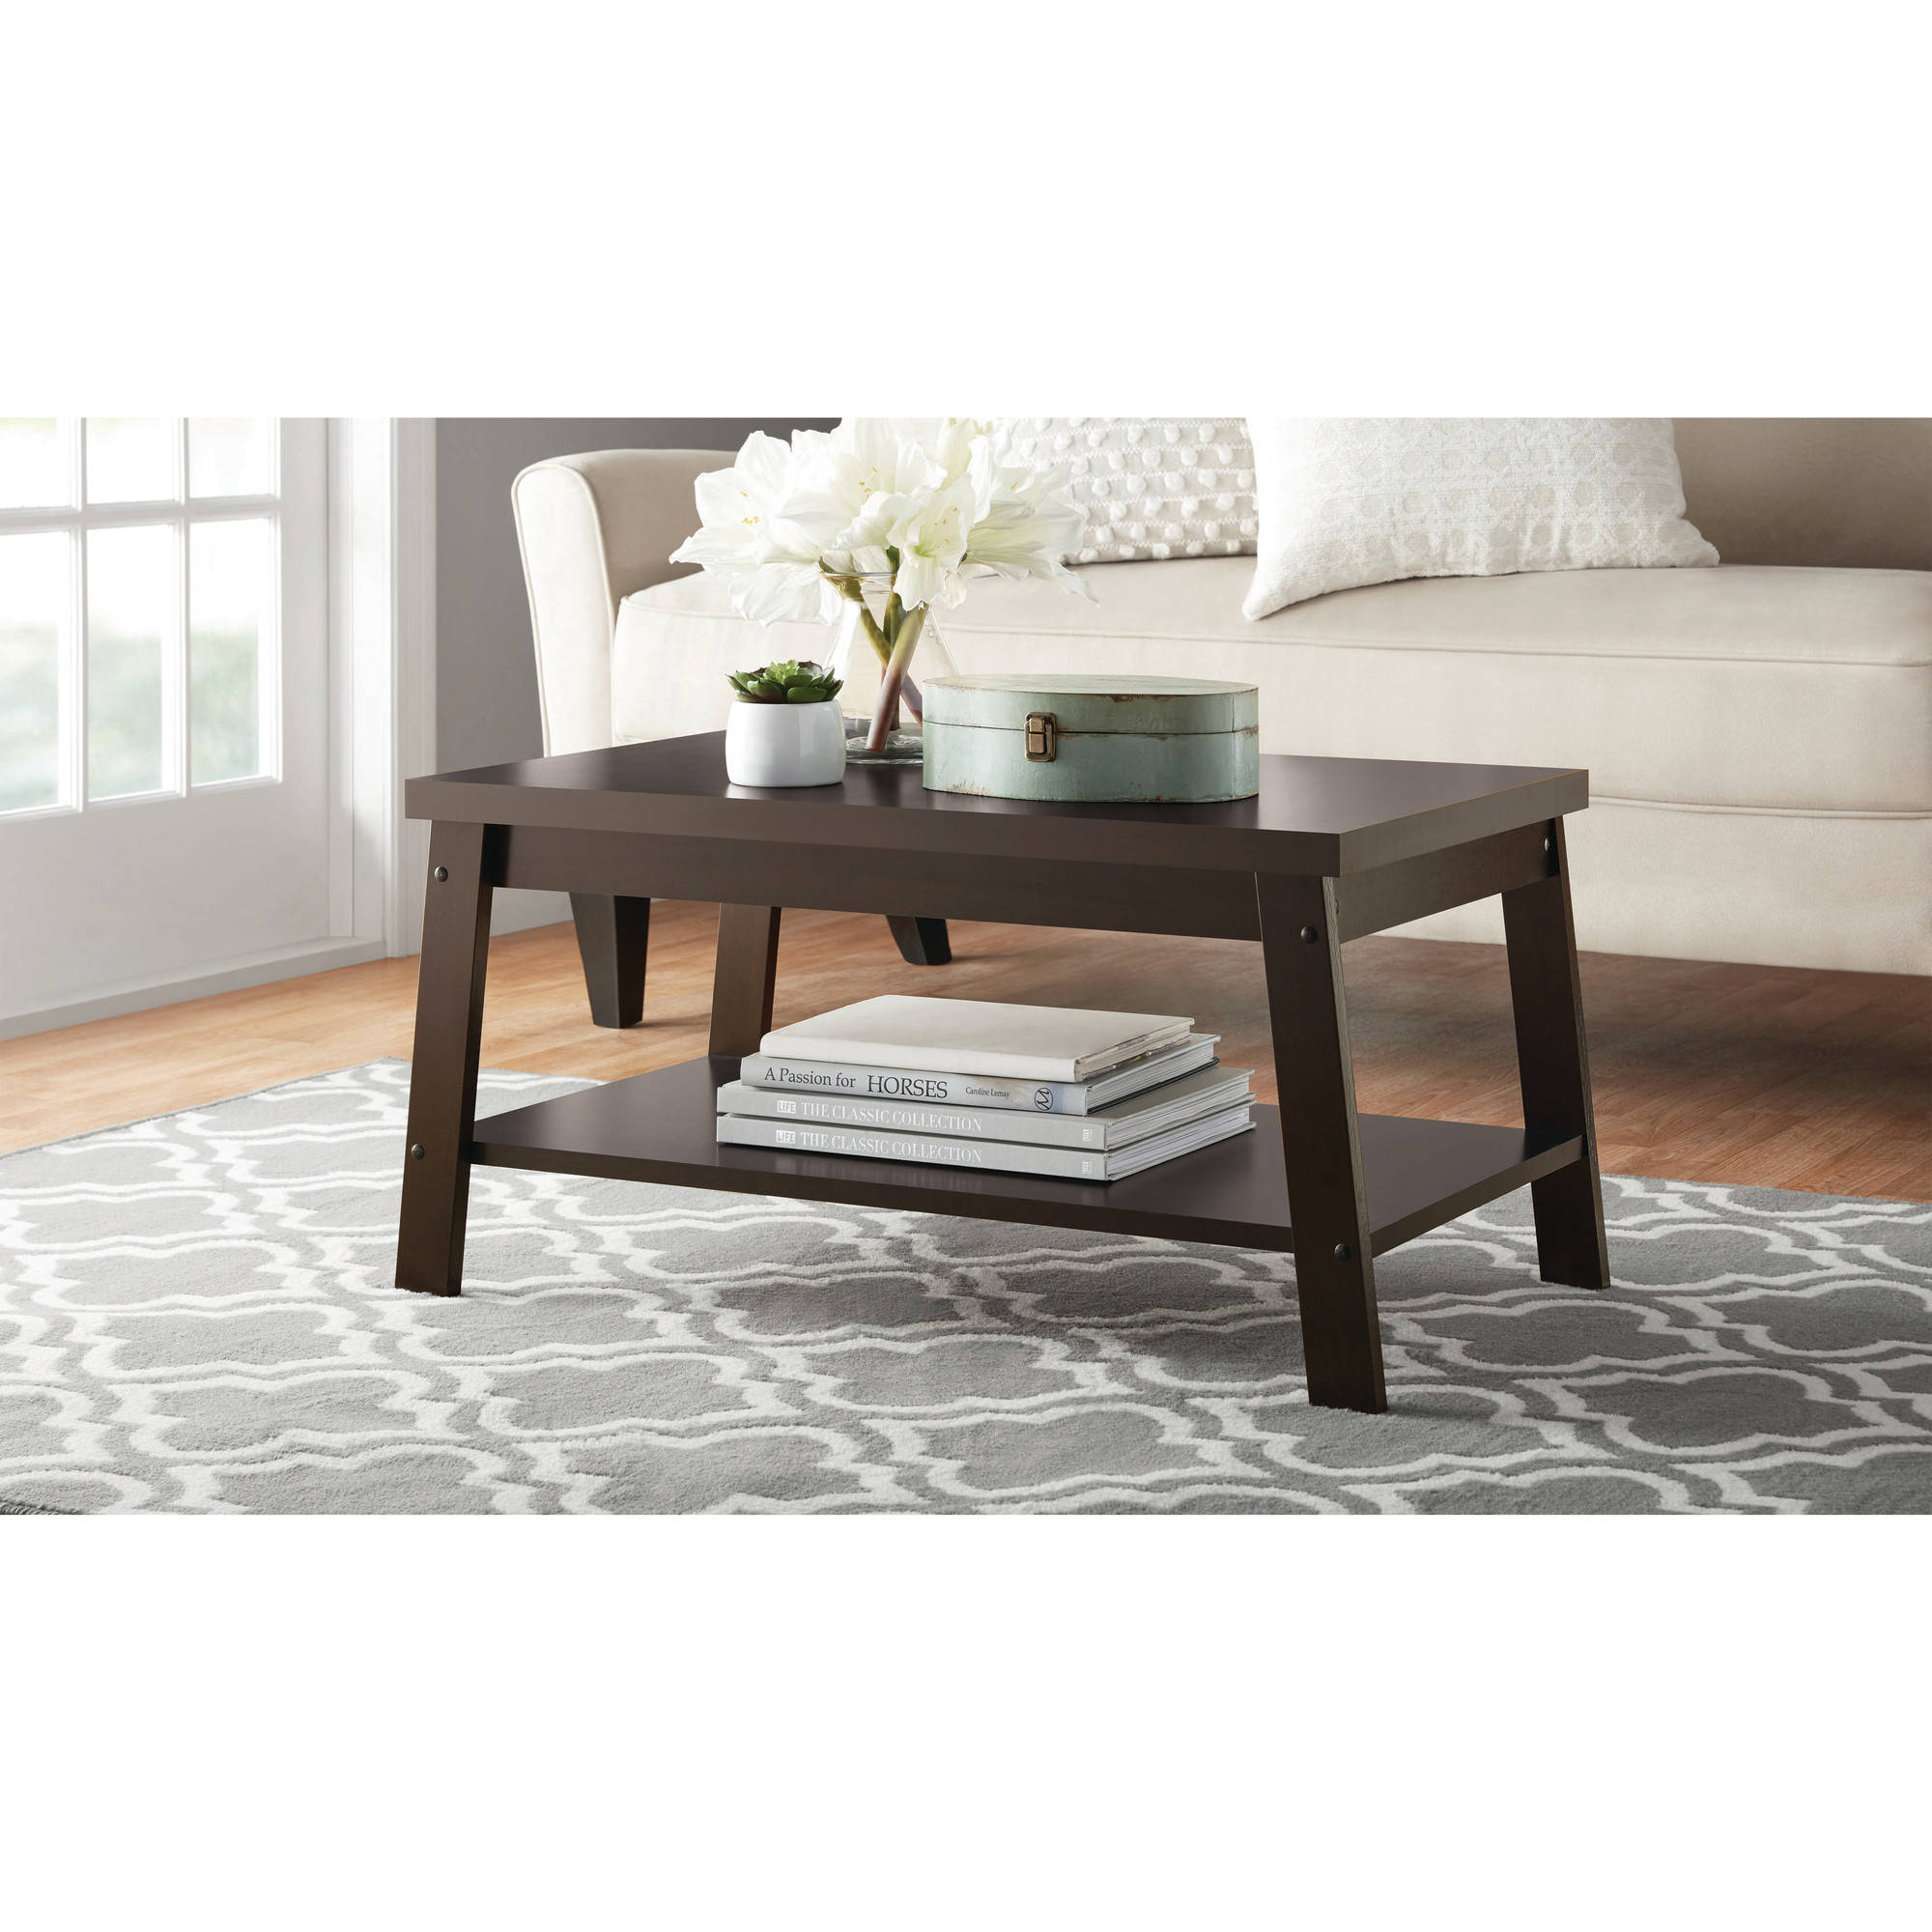 Mainstays Logan Coffee Table Espresso Finishes Walmart